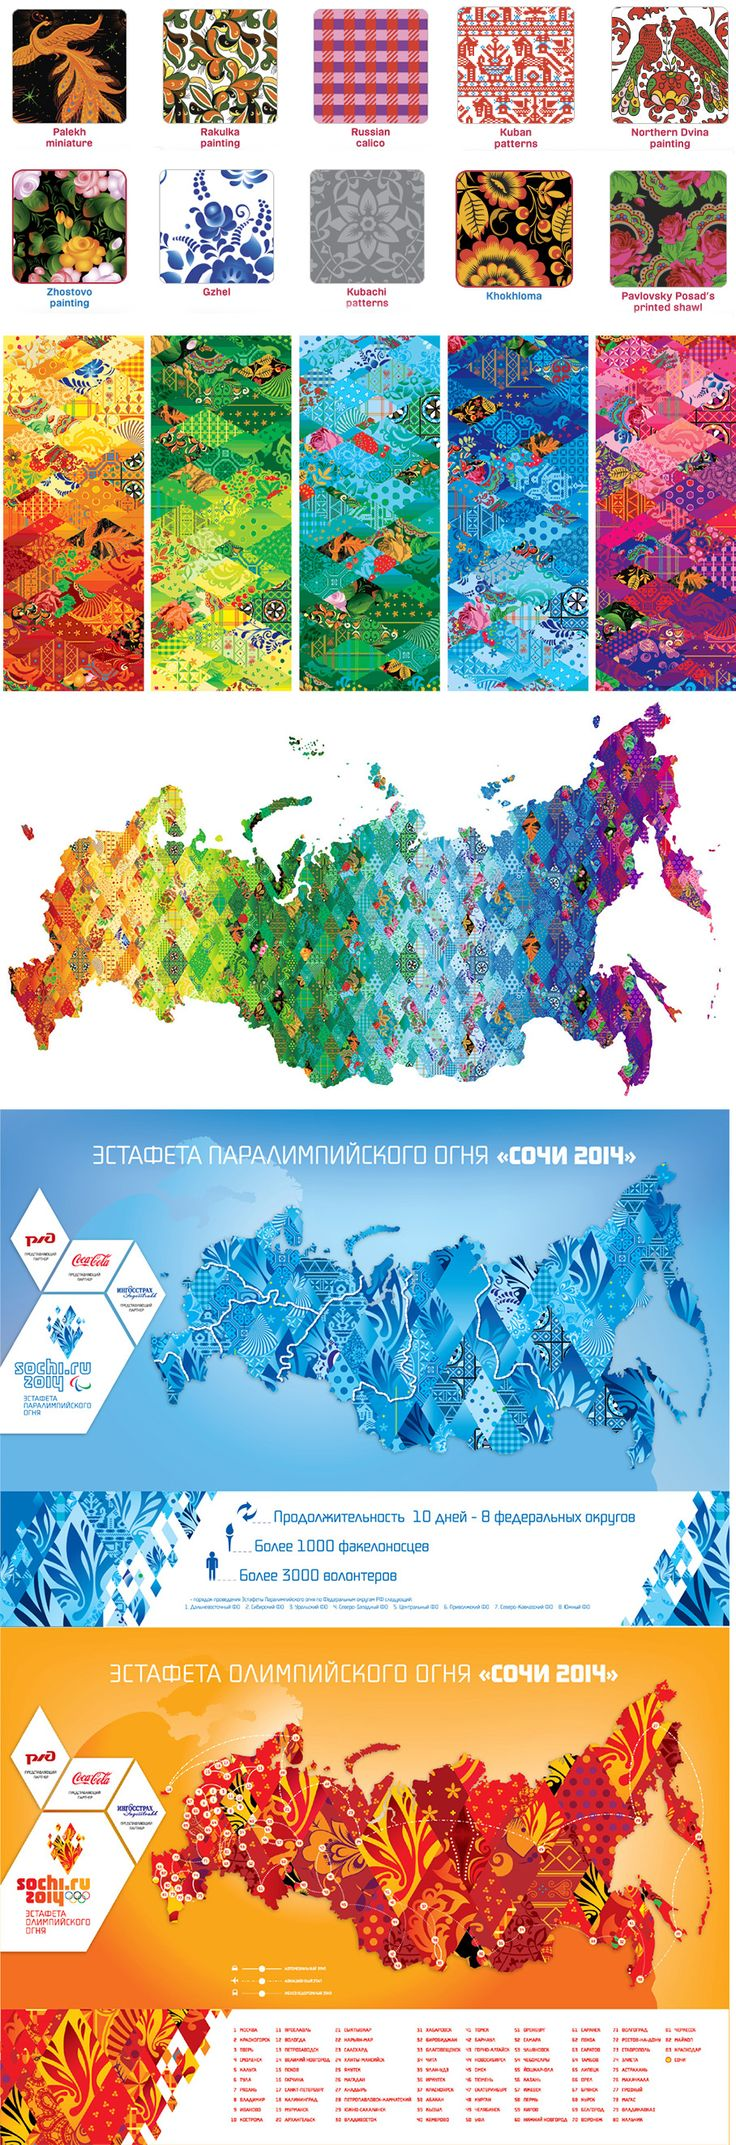 Sochi 2014 Olympic games identity Design by Interbrand Russia and Bosco's creative department sochi2014.bosco.ru/en/